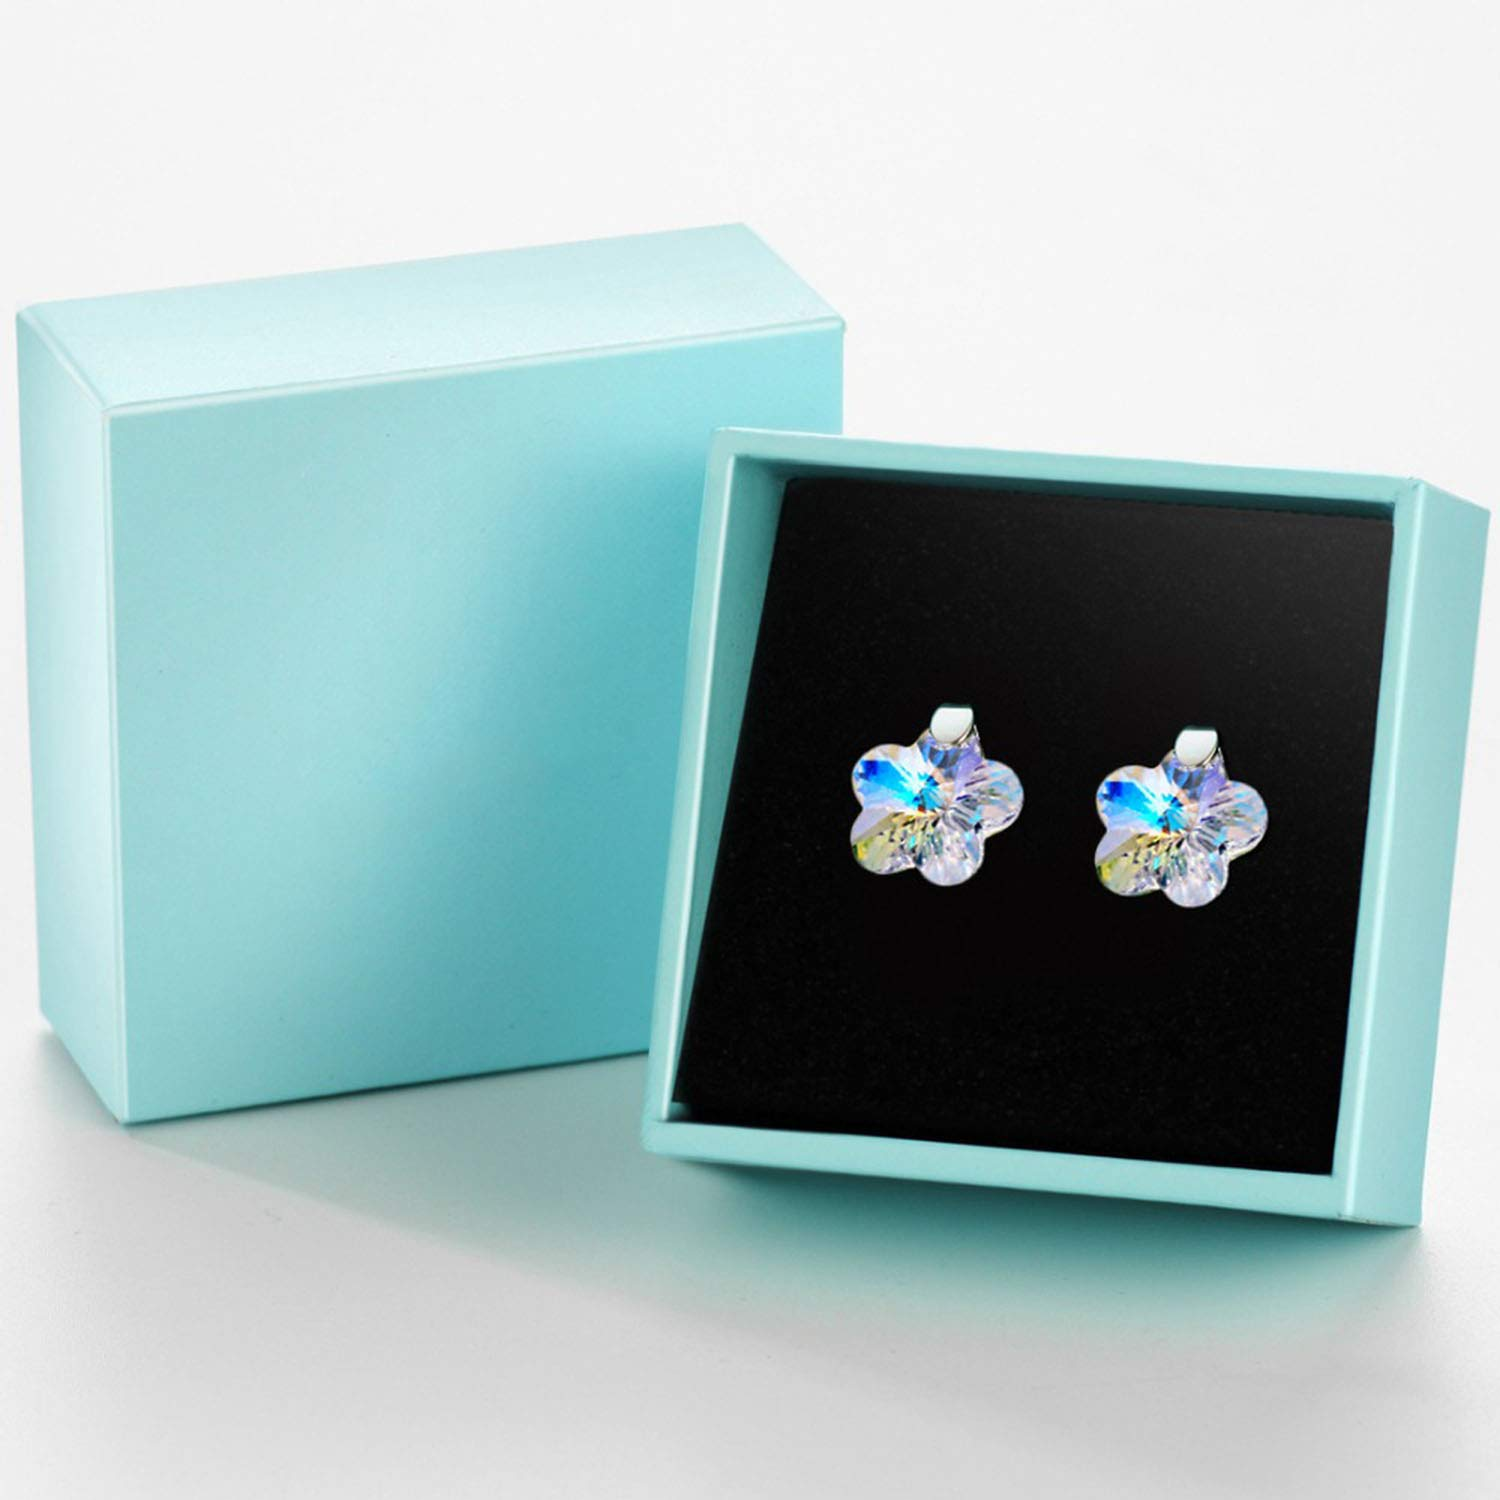 Crystal Shiny Simple Flowers Crystal S925 Stud Earrings Fashion Jewelry 2019 New Birthday Gifts